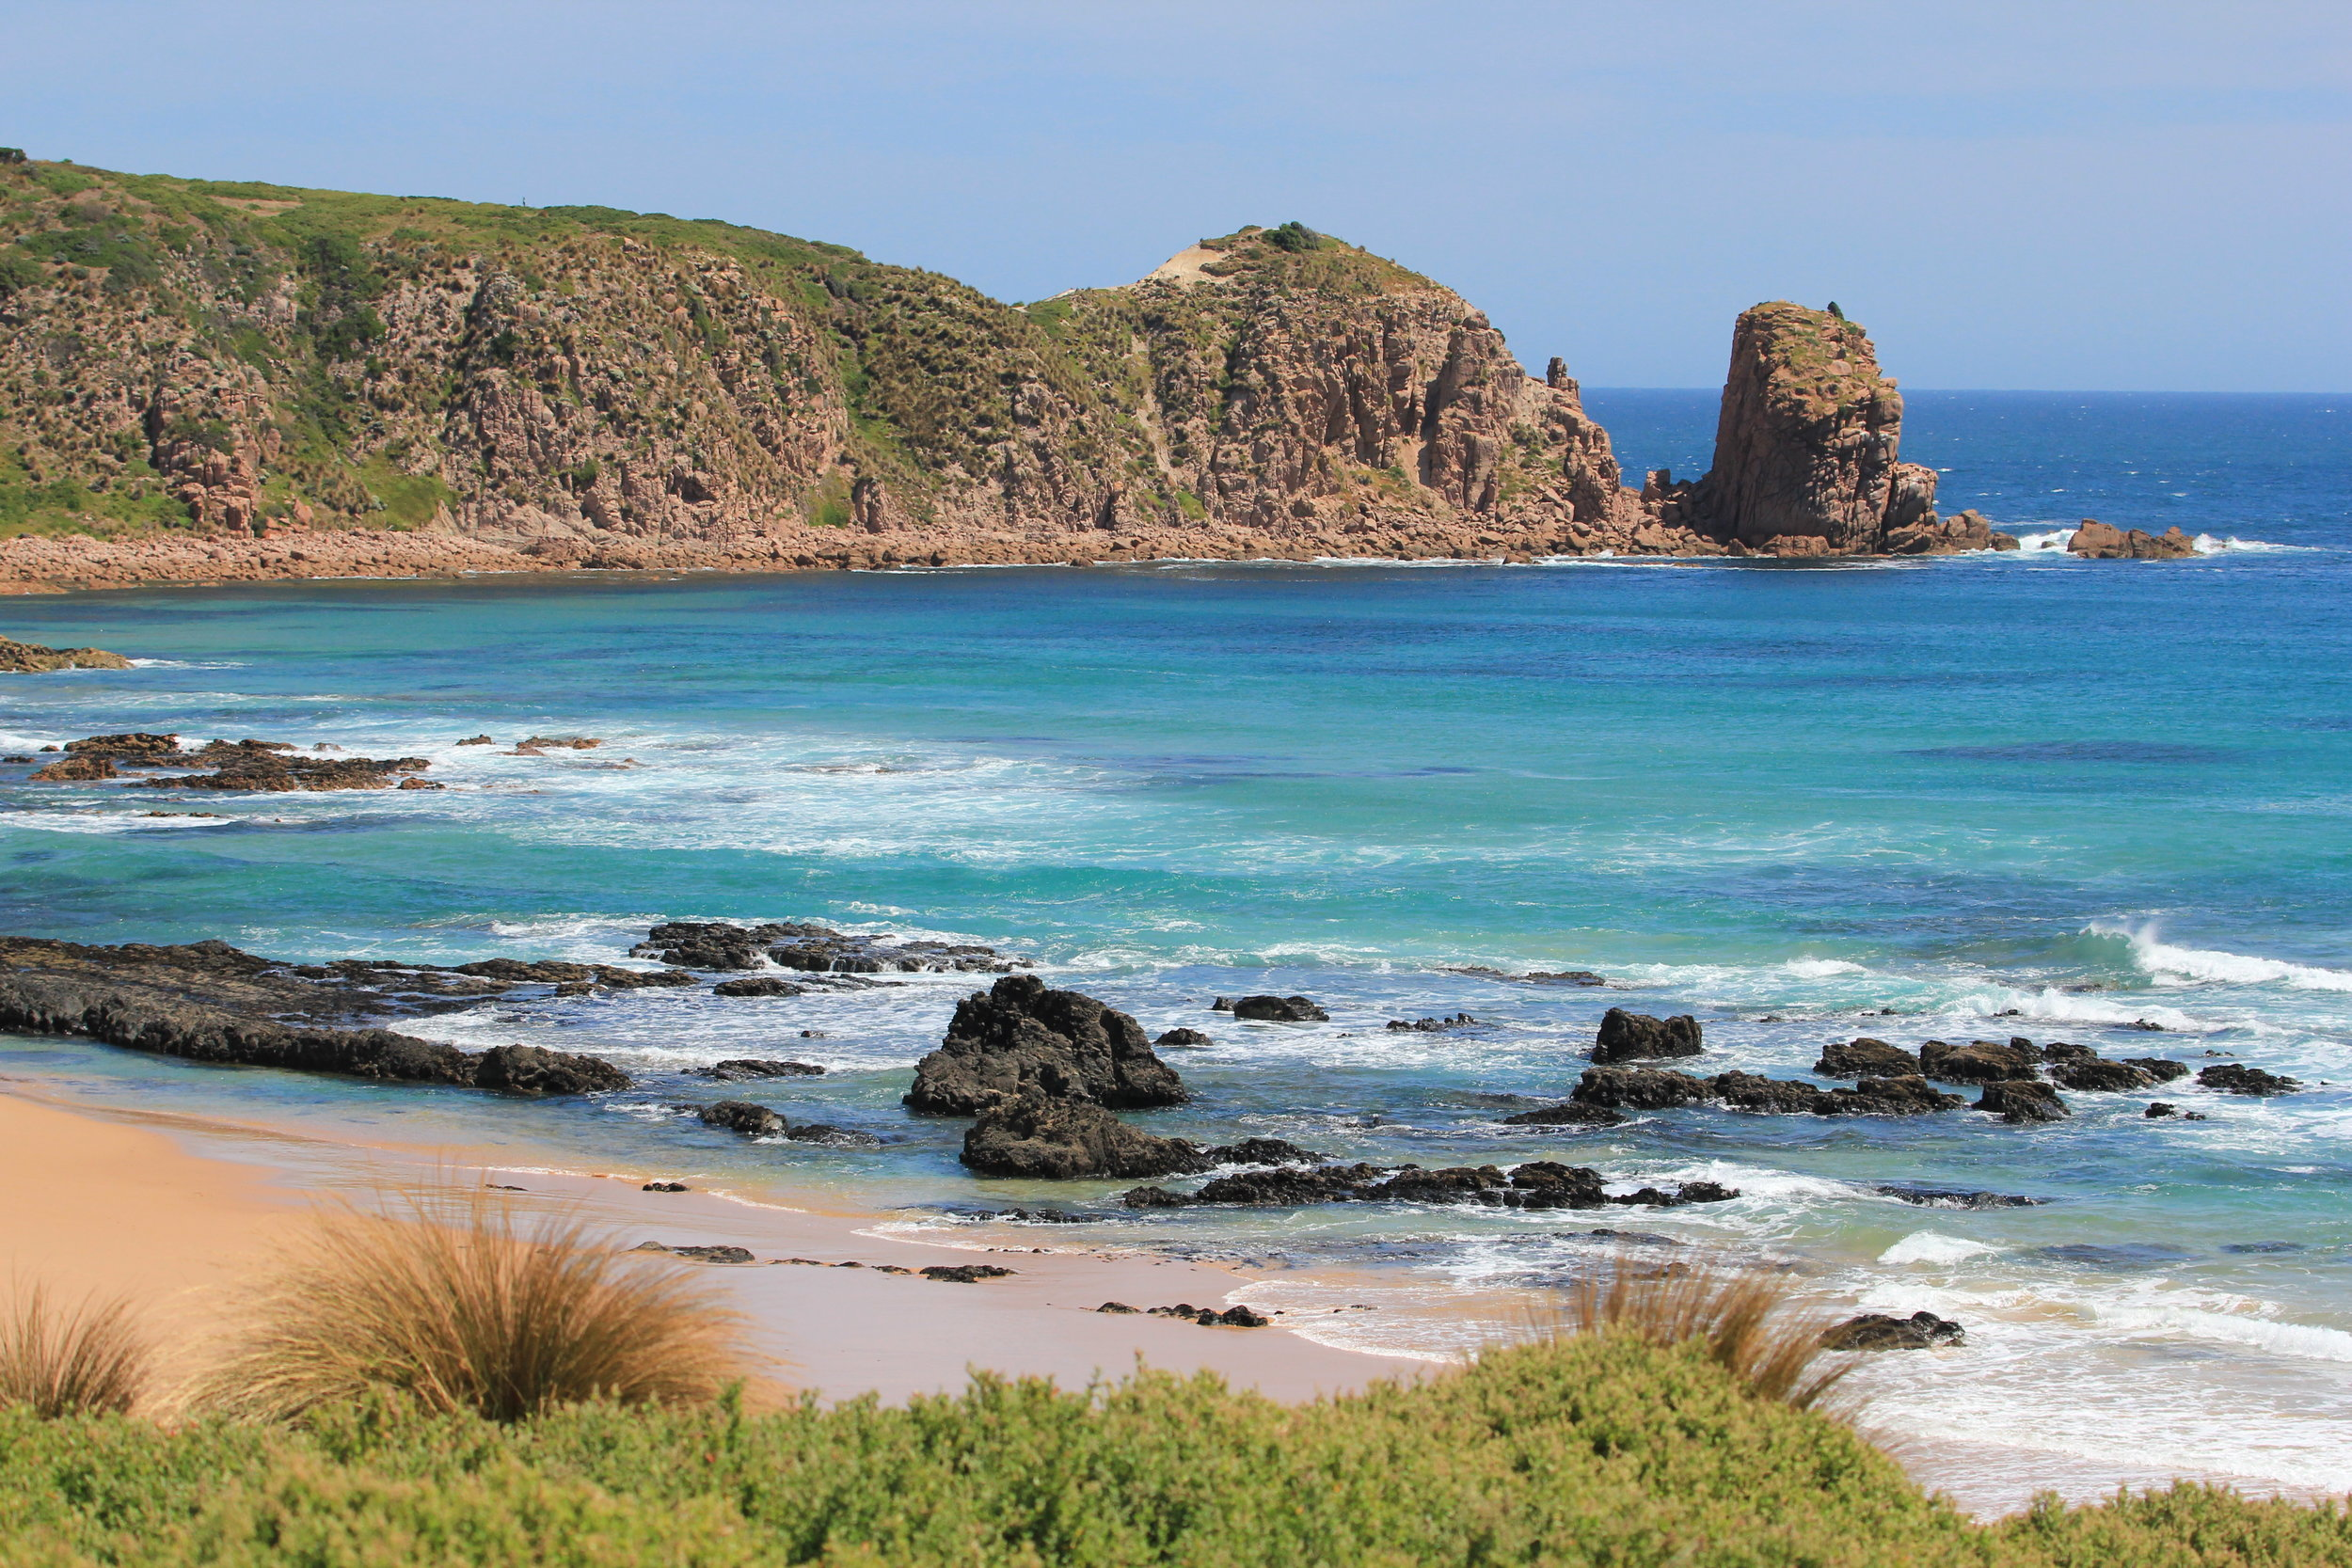 A clifftop view of the Pinnacles at Cape Woolamai.  Image: Elodie Camprasse